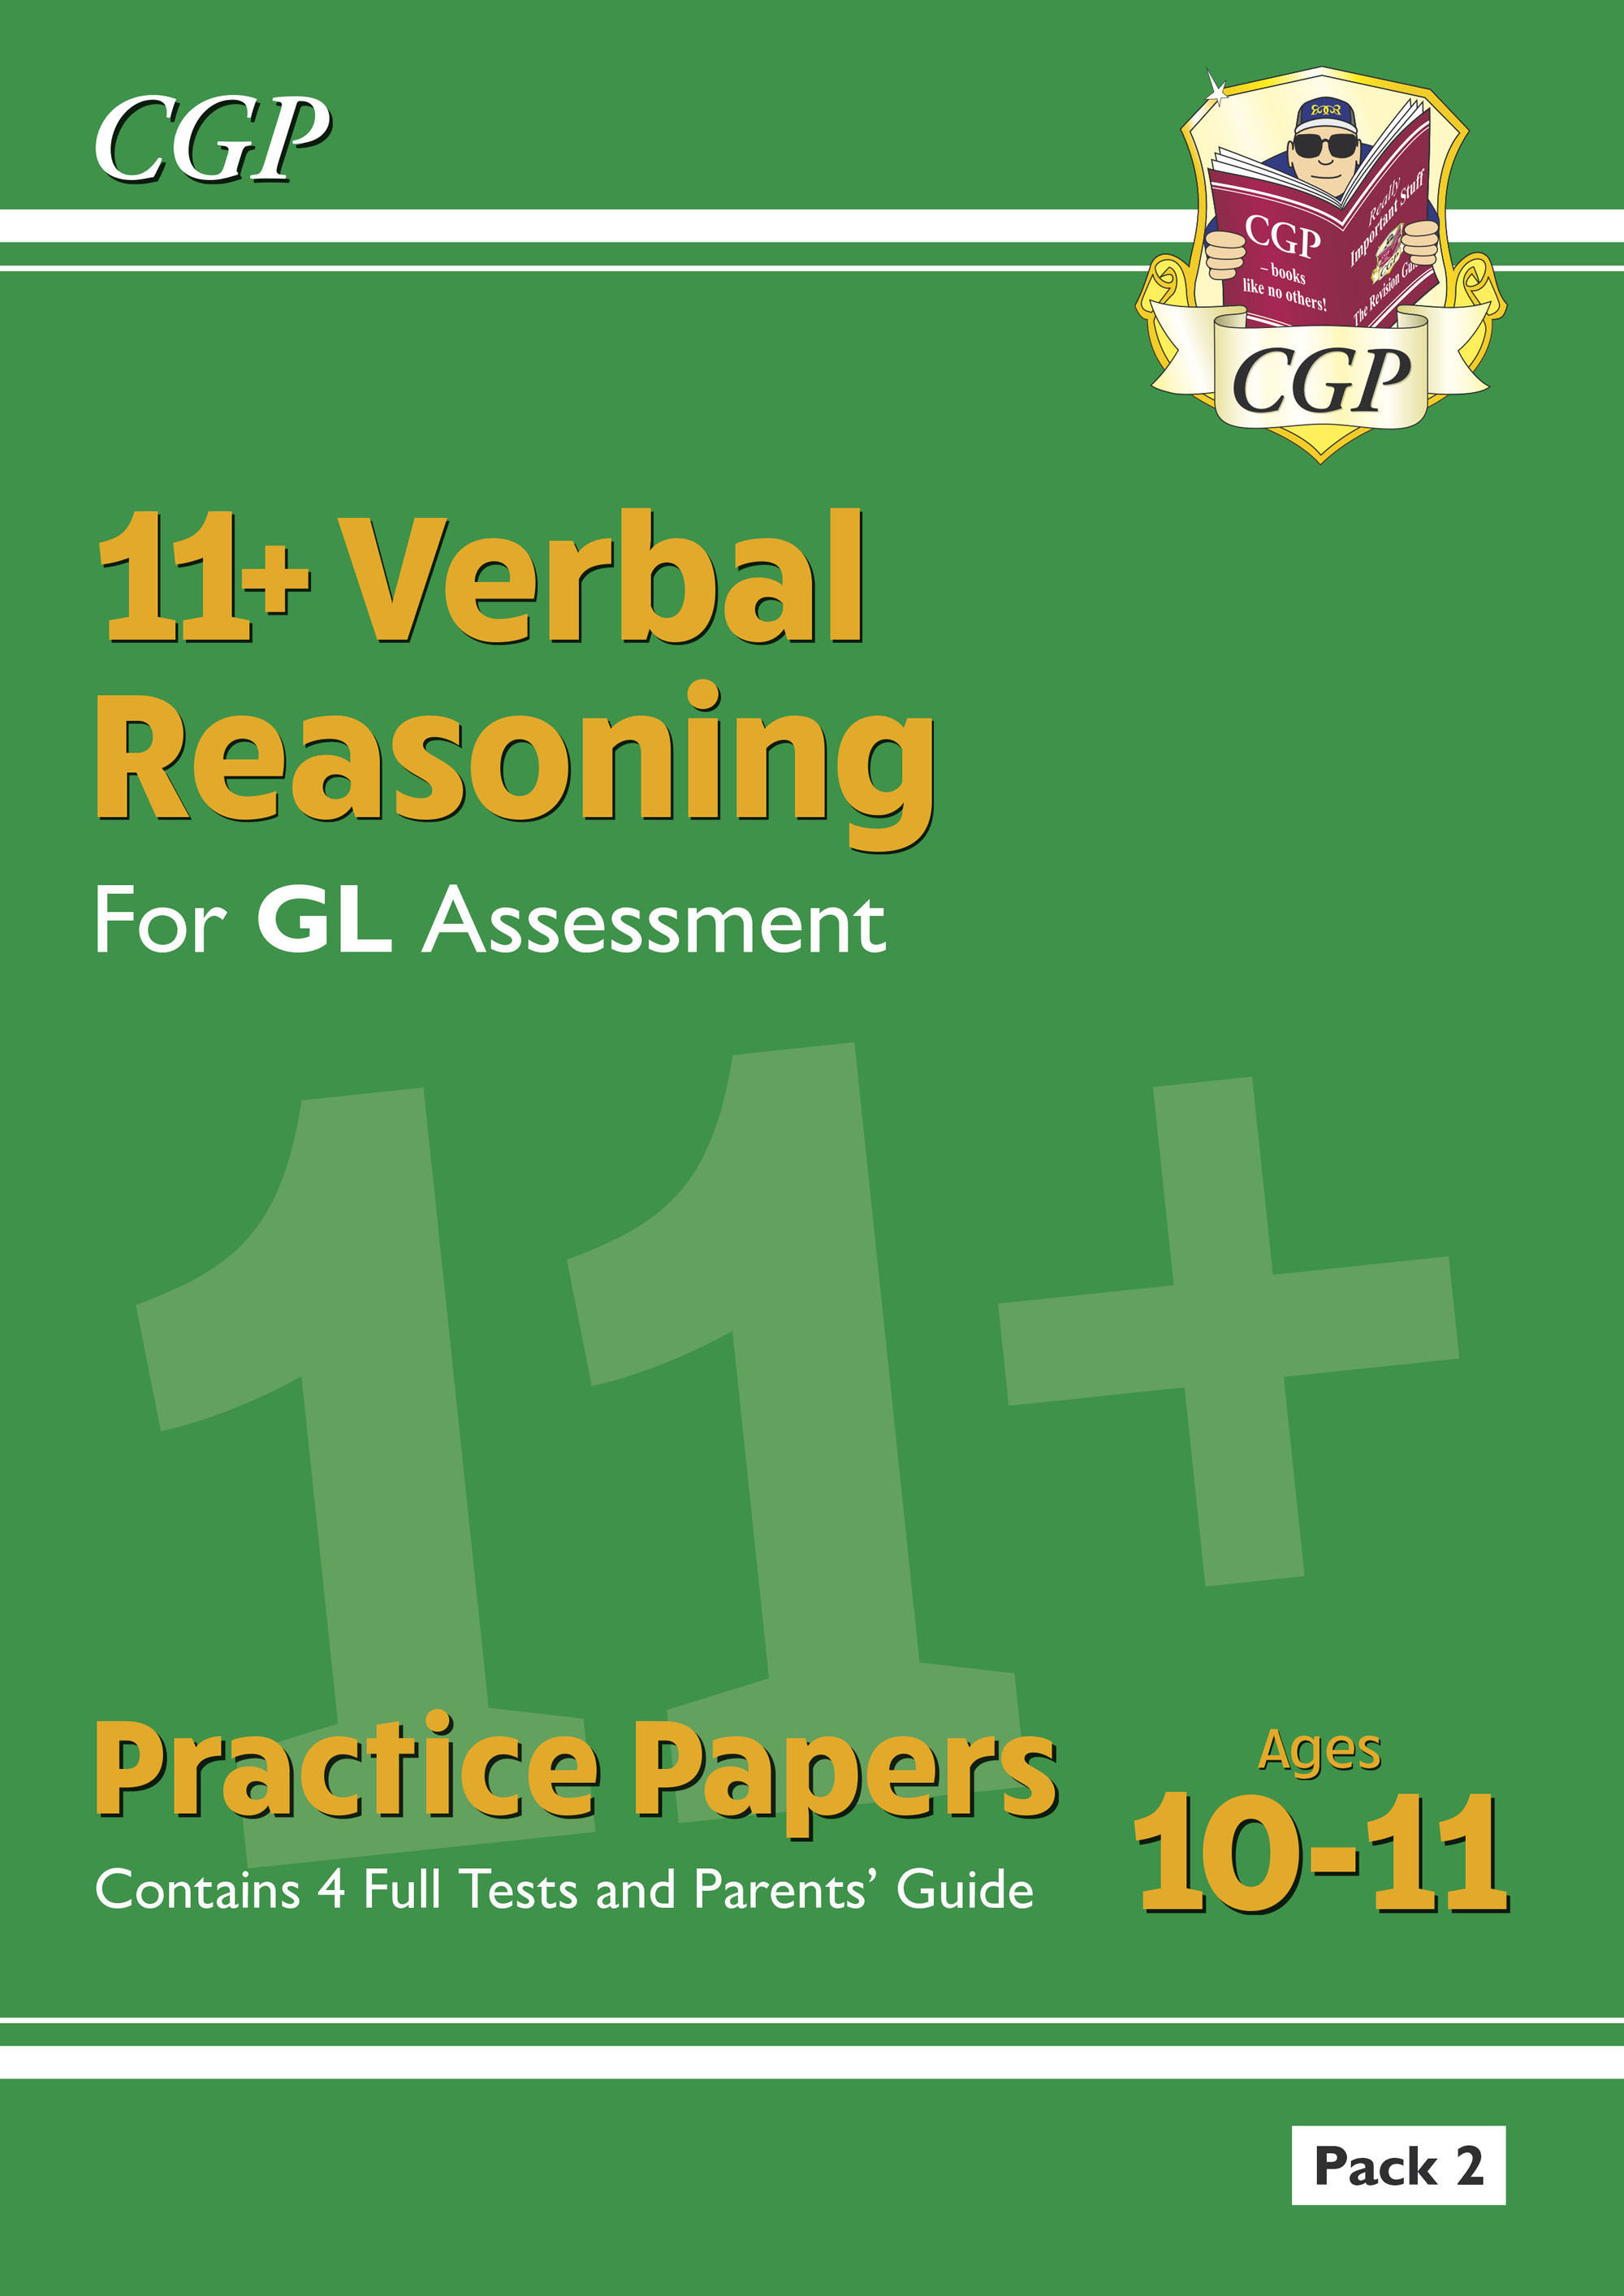 VHT2E2DK - New 11+ GL Verbal Reasoning Practice Papers: Pack 2 (with Parents' Guide)